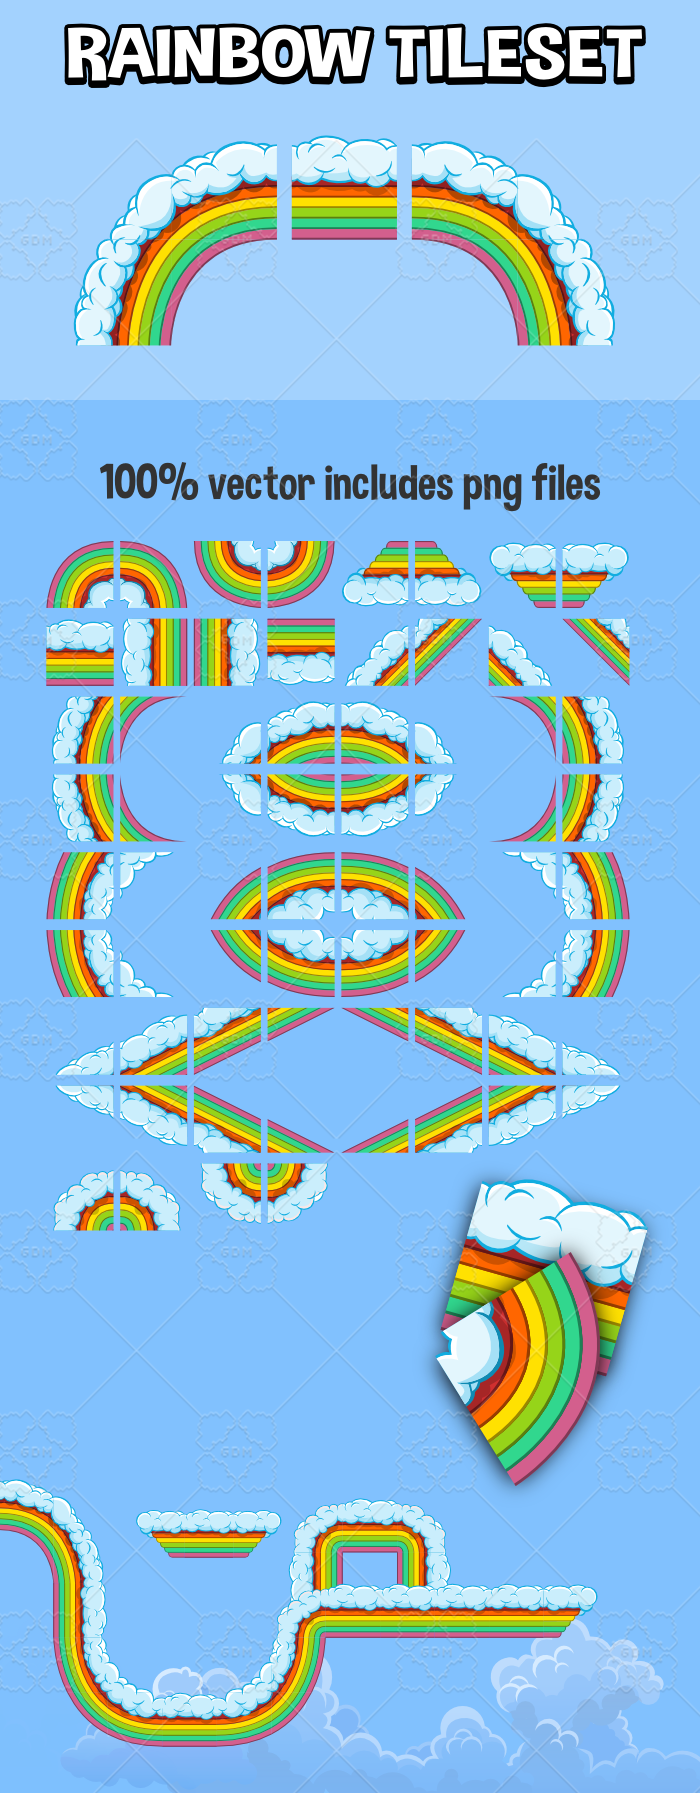 rainbow tile set for sd game development